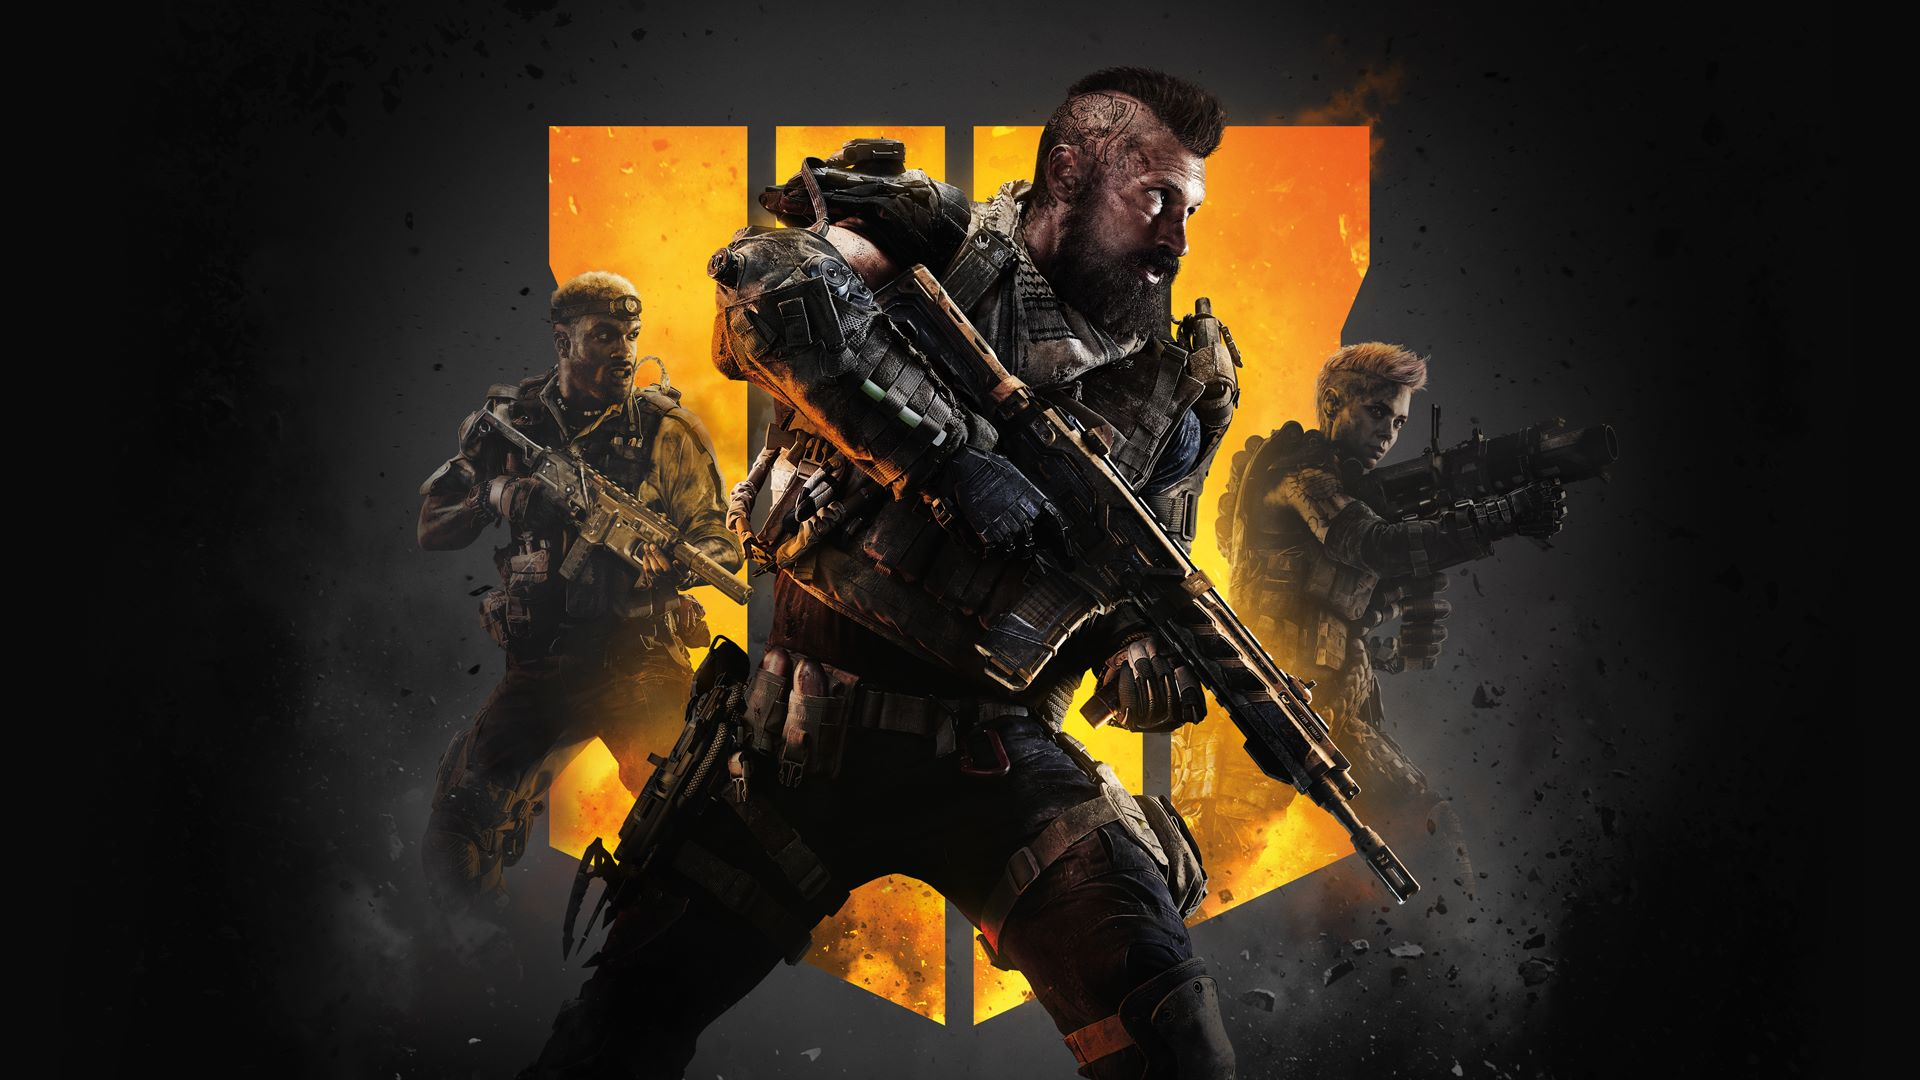 black ops 4, how to level up fast, level up guide